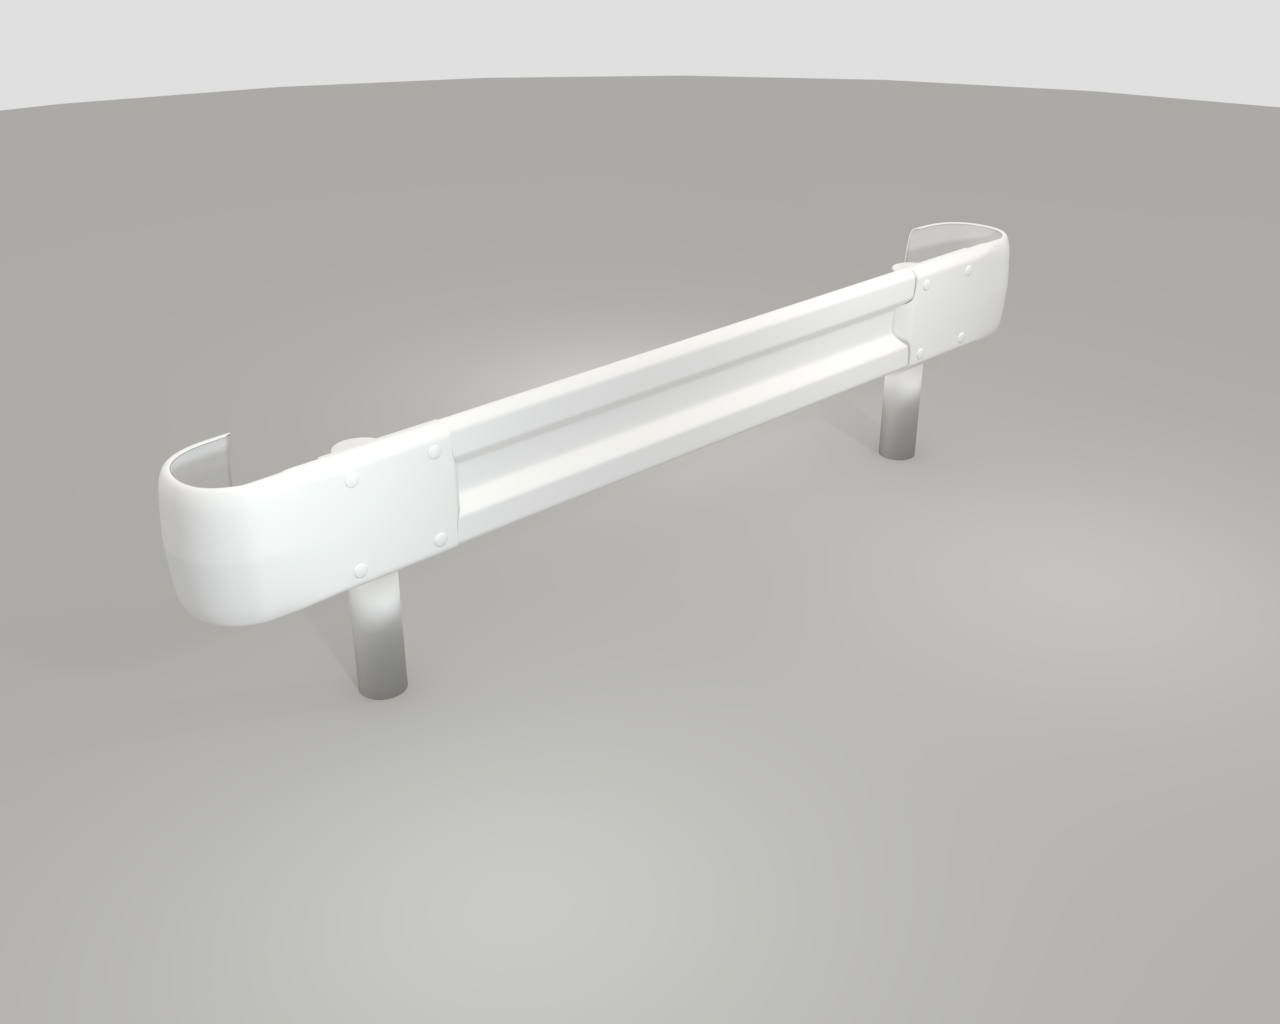 guardrail in japan 3d model fbx 282217